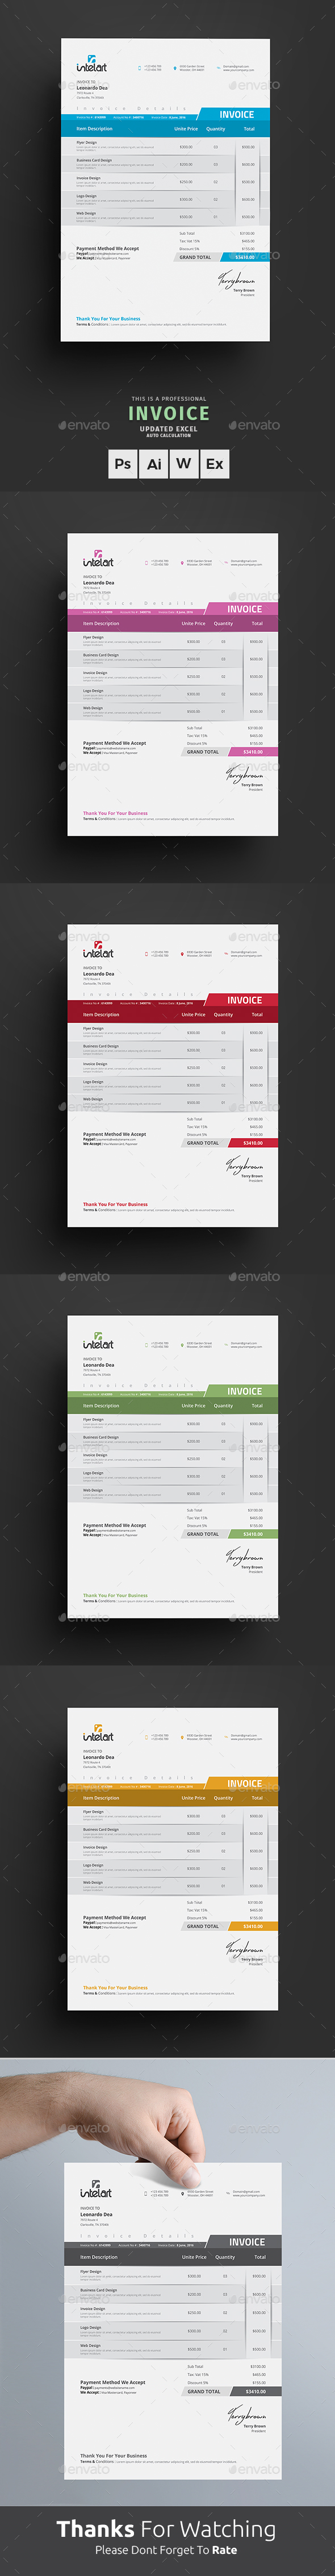 Invoice Excel by themedevisers   GraphicRiver Invoice Excel   Proposals   Invoices Stationery